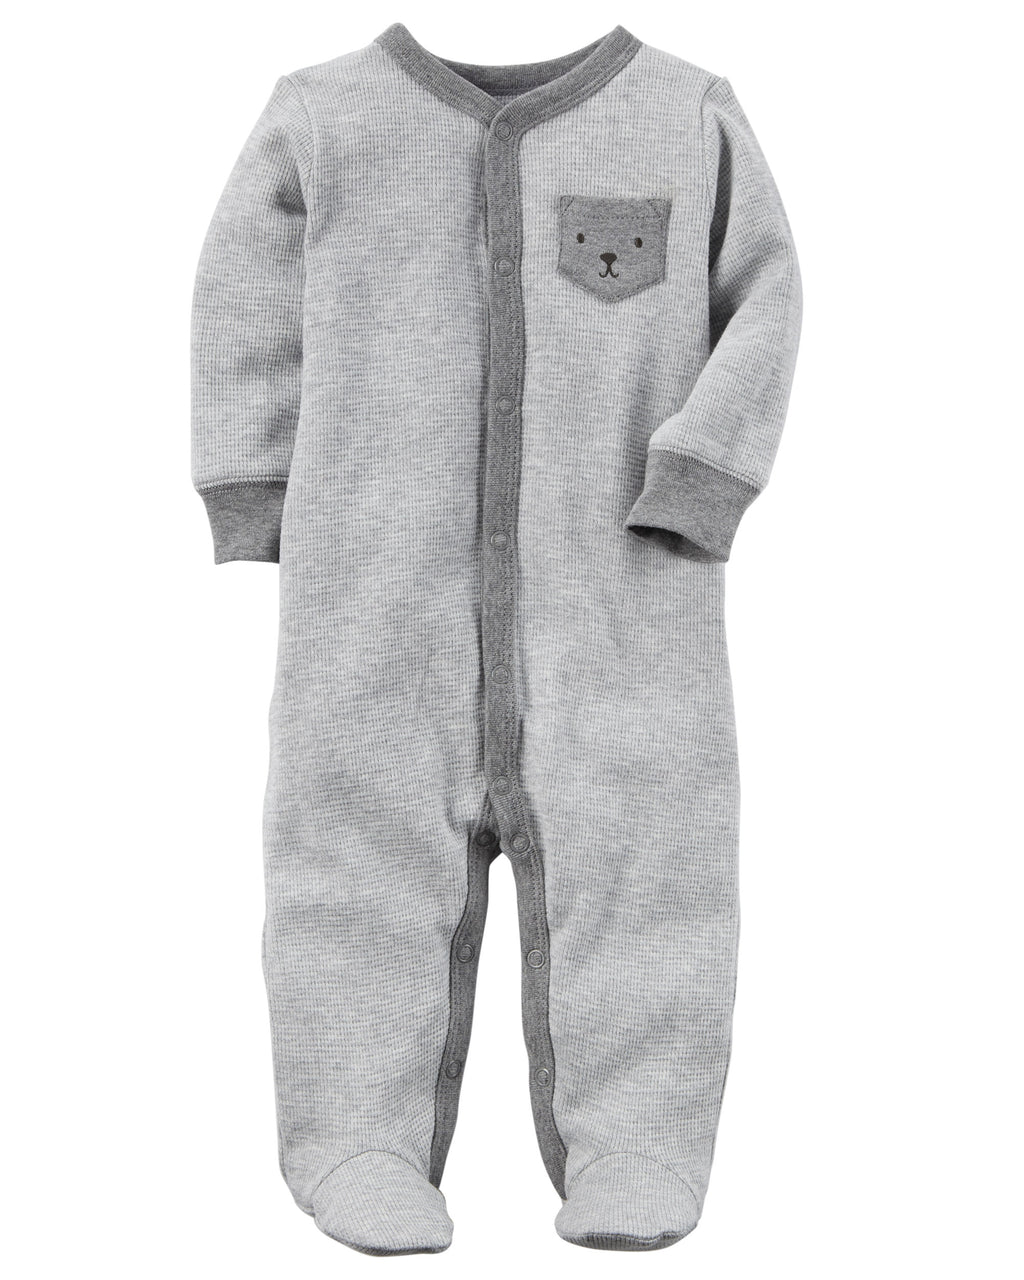 Enterito CARTERS Bear Snap-Up Thermal Sleep & Play